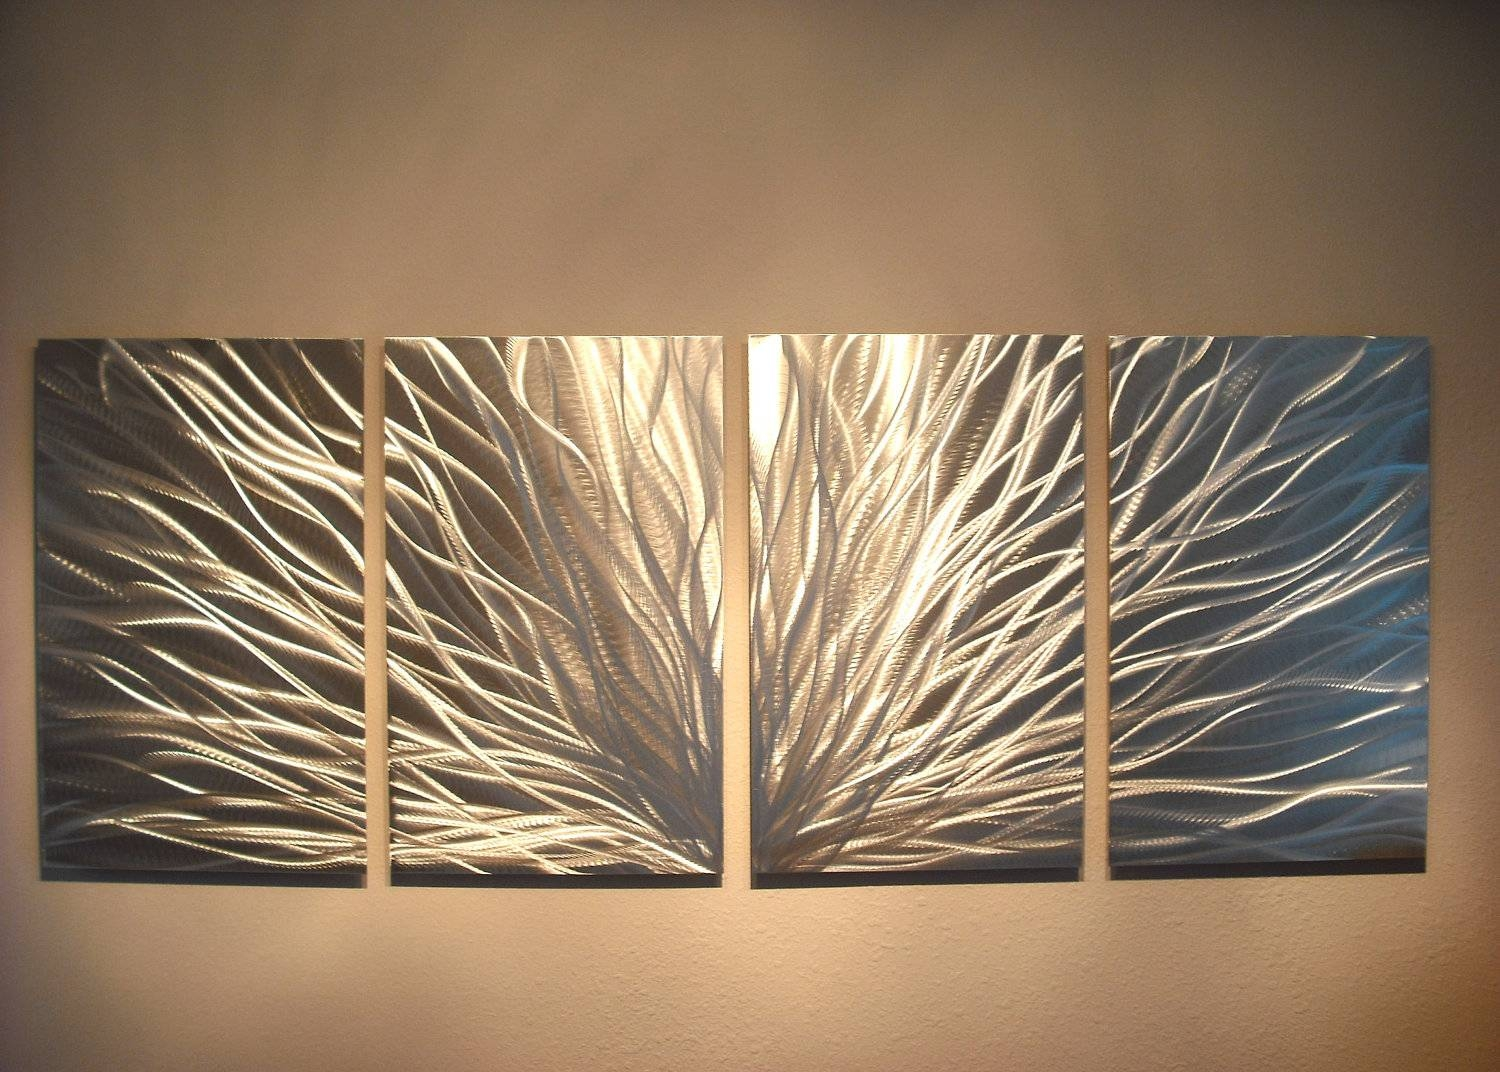 Radiance – Abstract Metal Wall Art Contemporary Modern Decor In Most Current Contemporary Large Metal Wall Art (Gallery 4 of 20)